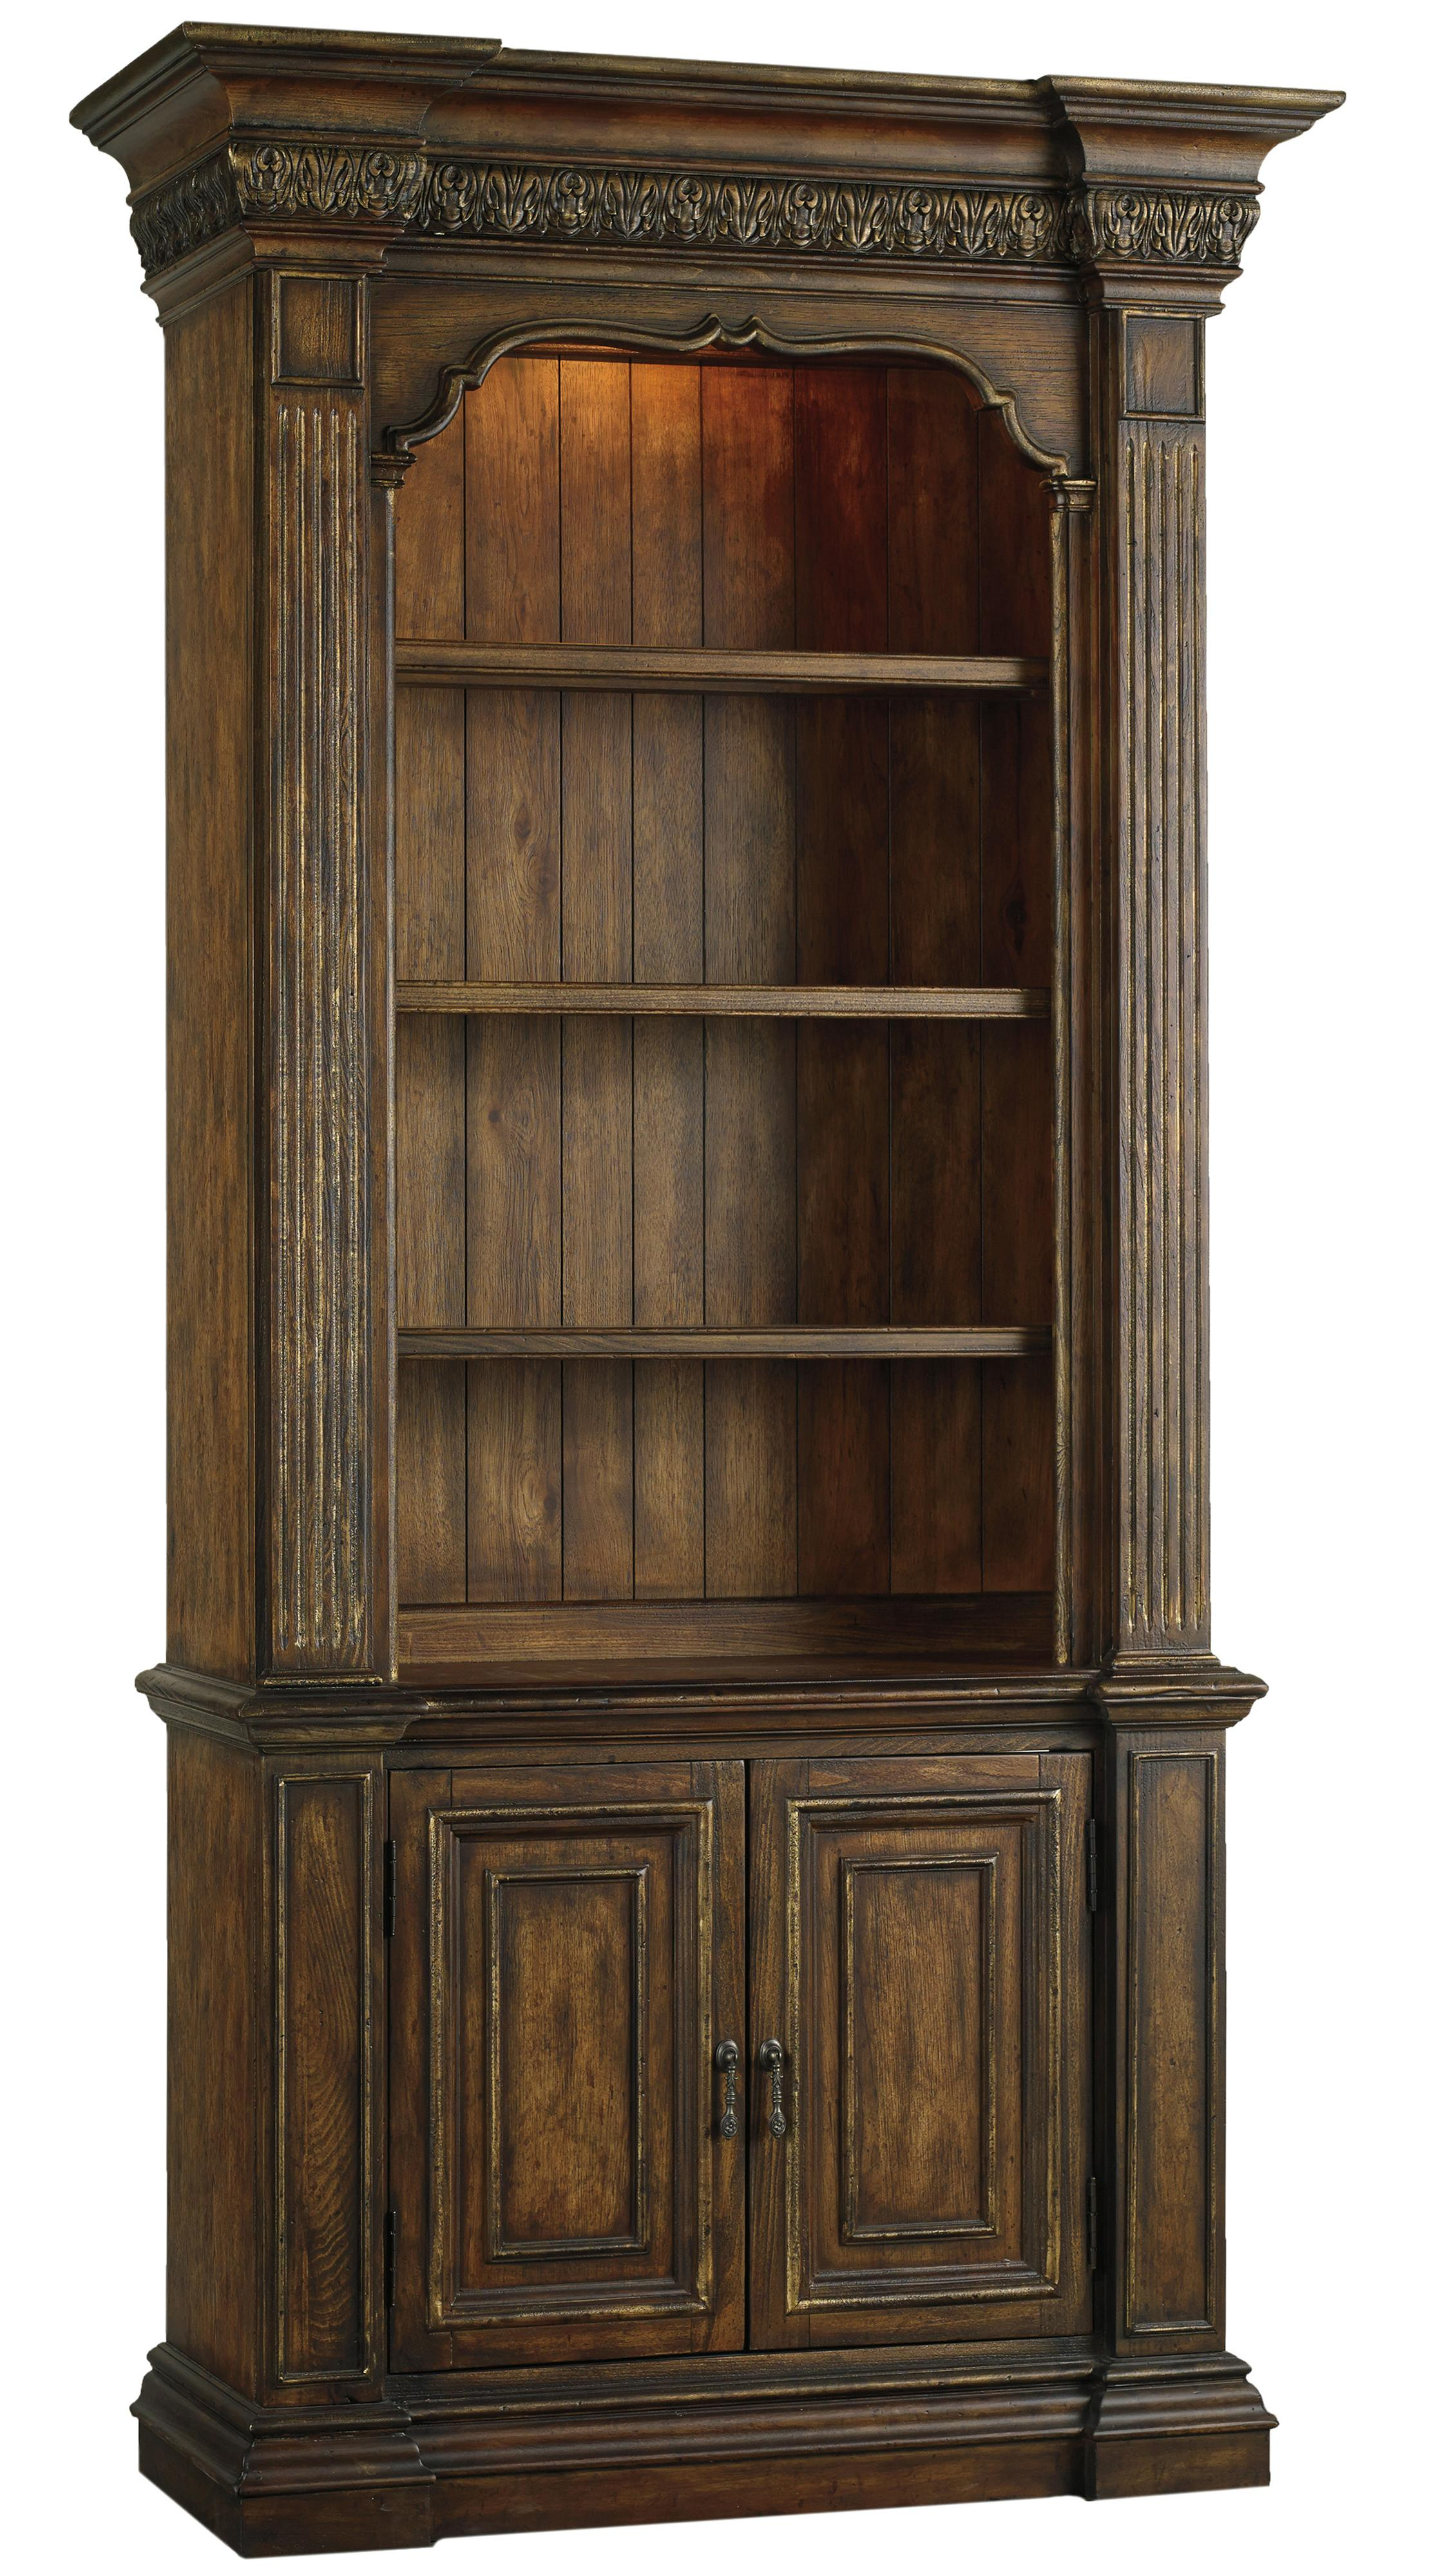 Hamilton Home Adagio Bookcase - Item Number: 5091-10445